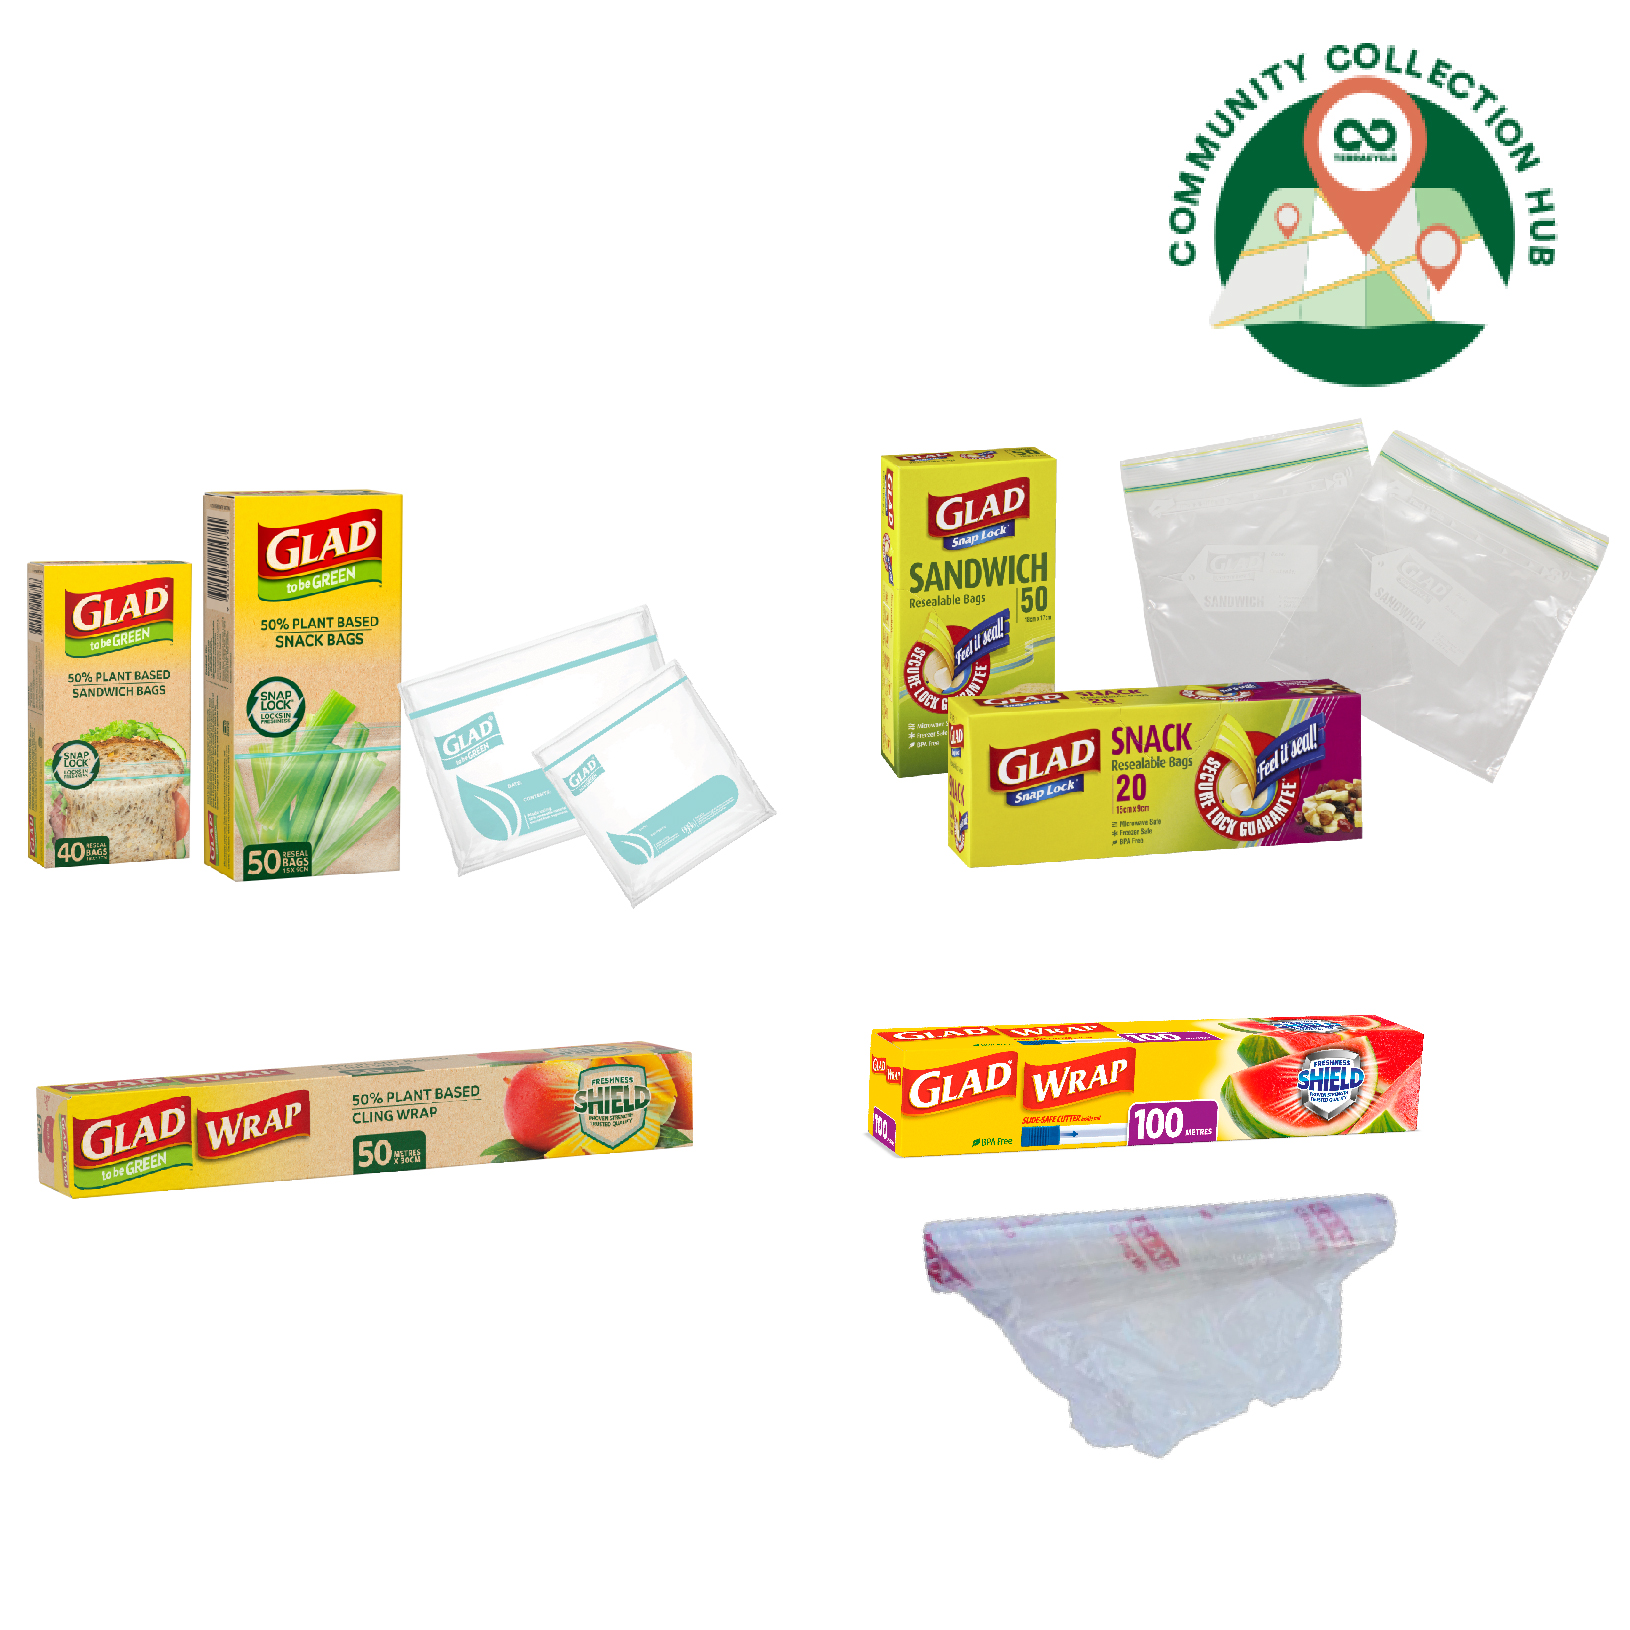 Thumbnail for GLAD® Food Care Recycling Program - Community Collection Hubs